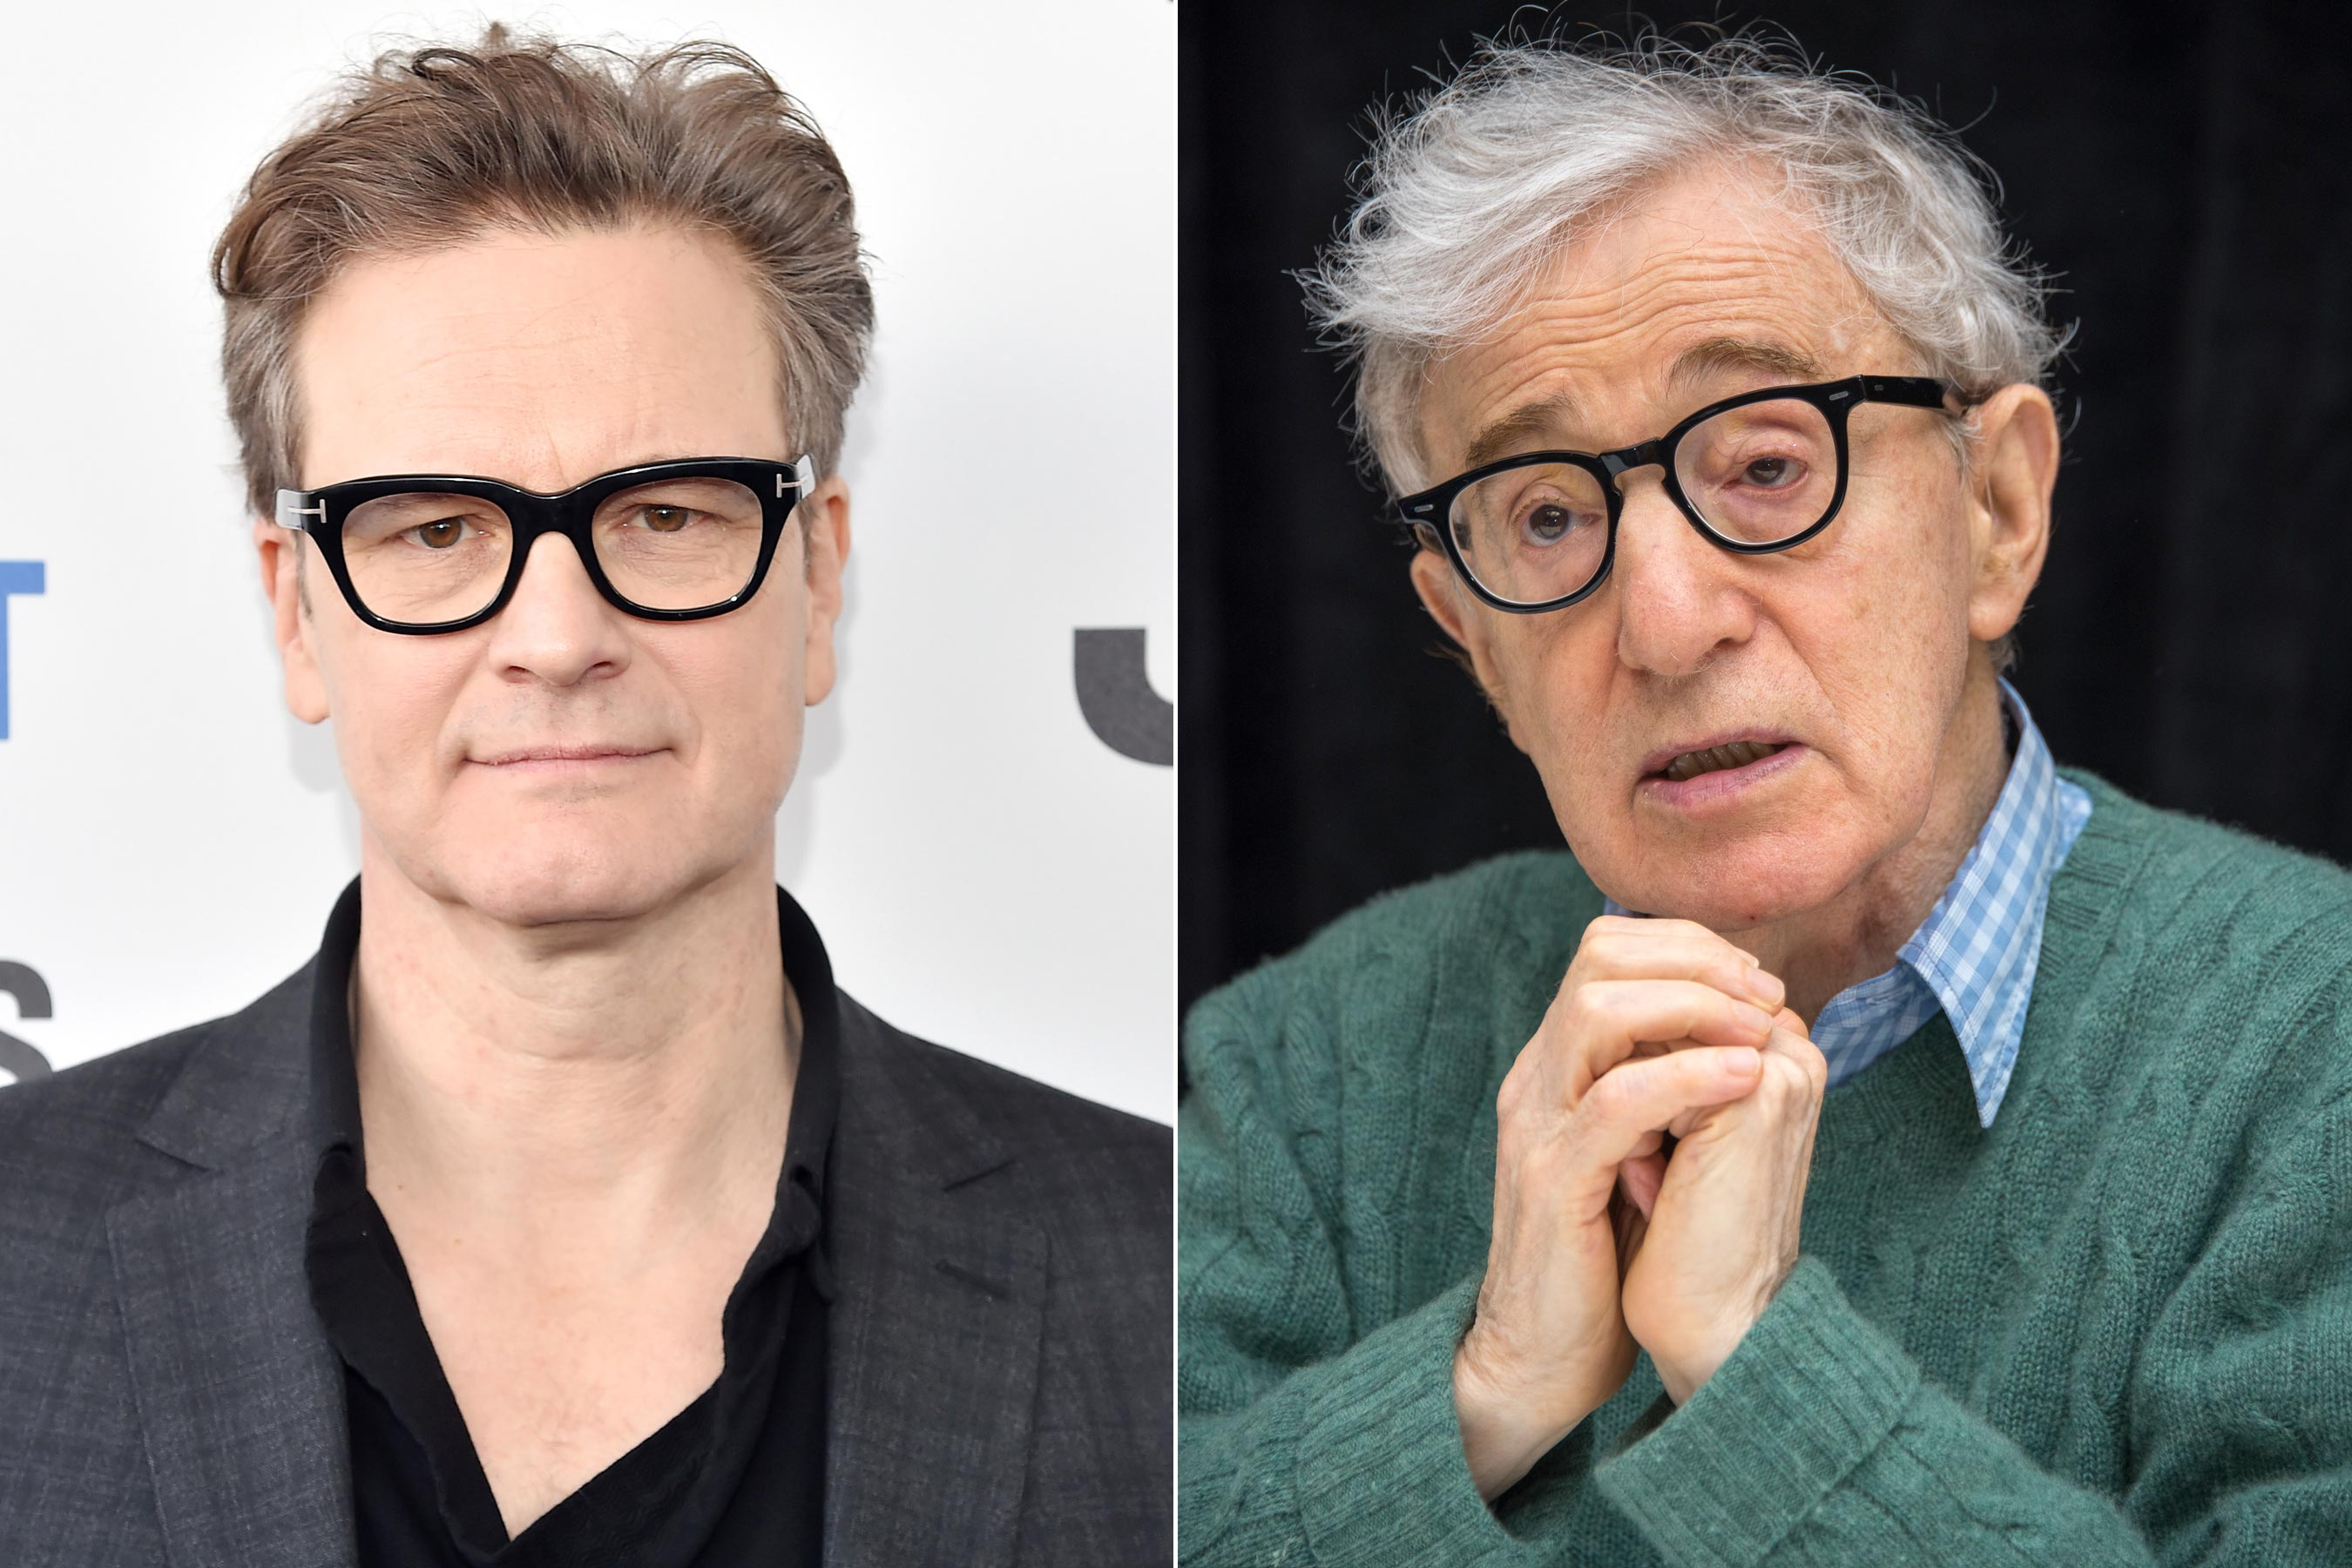 Colin Firth says he will not work with director Woody Allen again